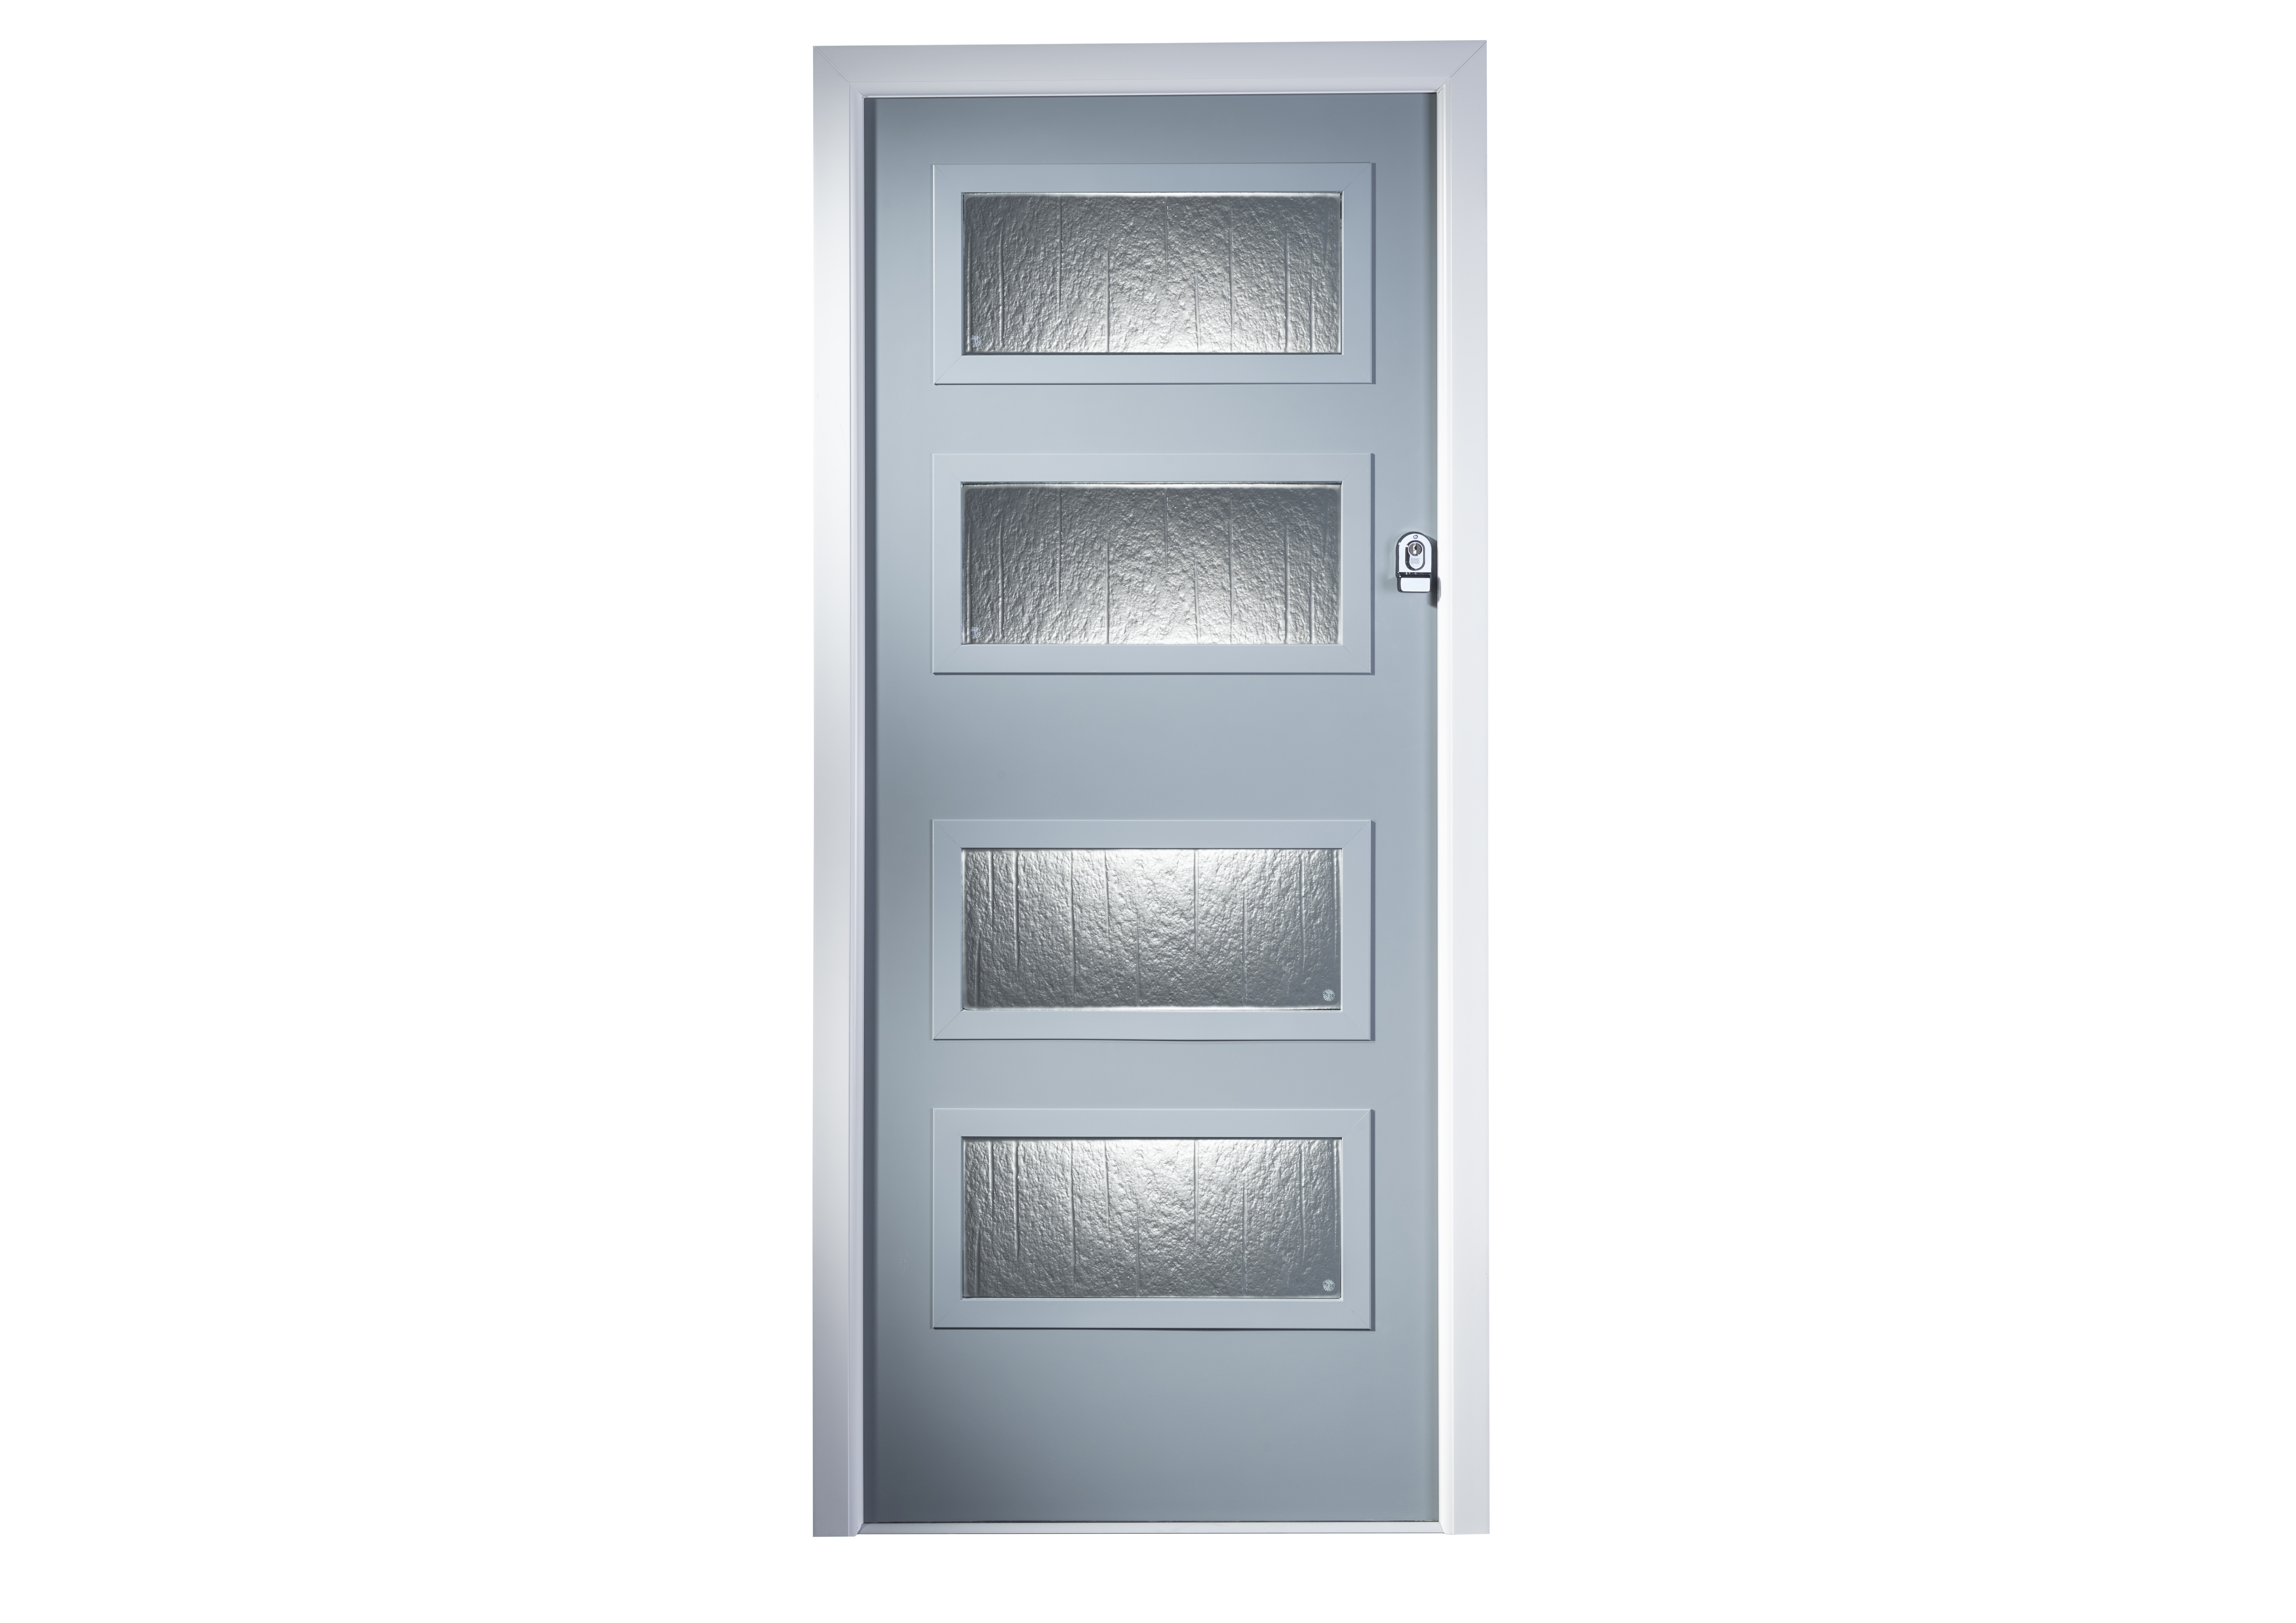 The Contemporary Pisa Door from Force 8